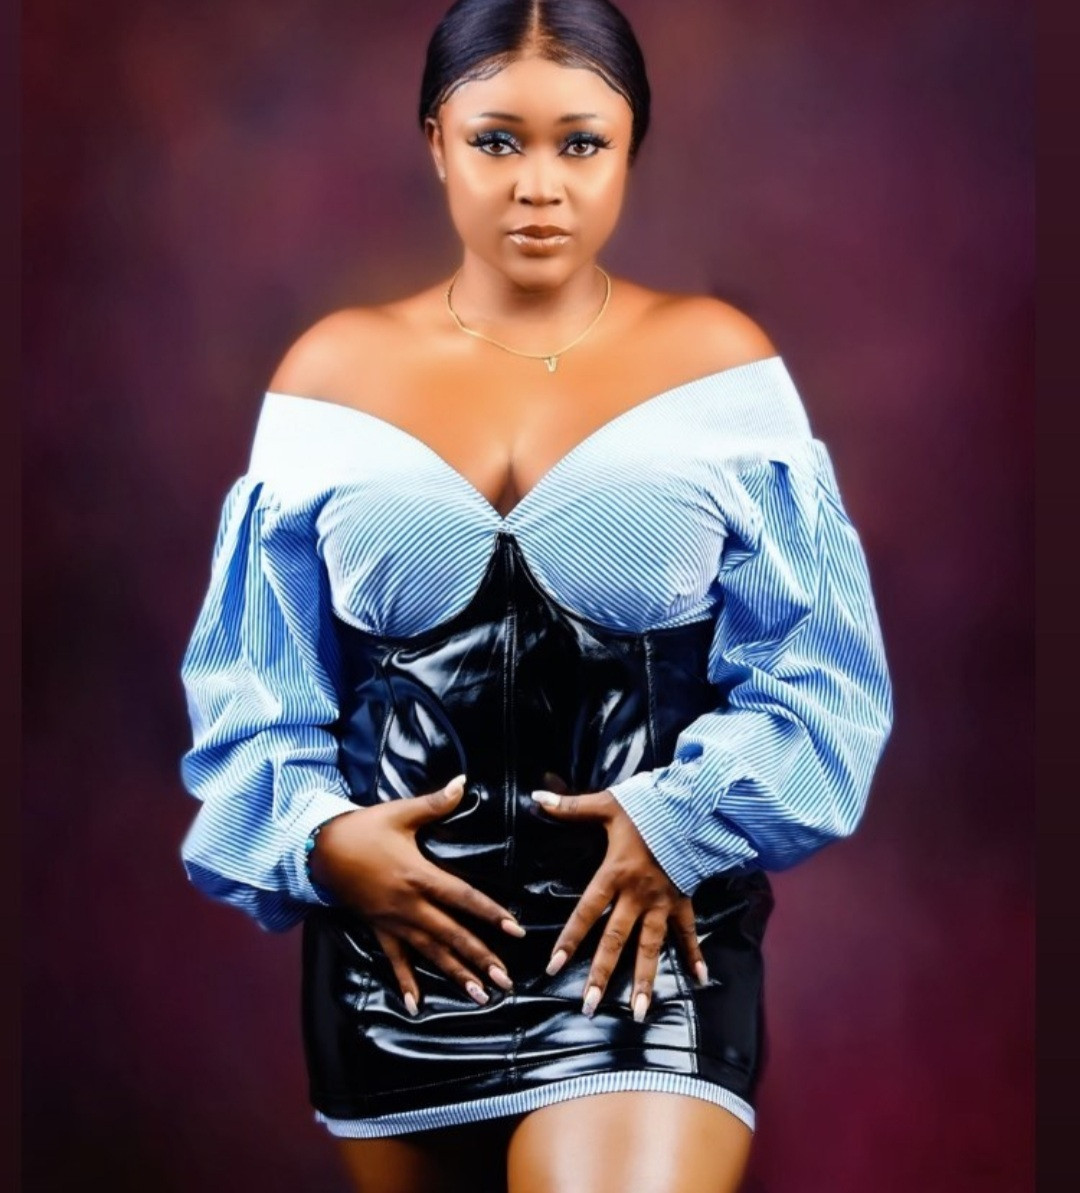 Actress Iheme Nancy confesses to engaging in a threesome and reveals she can